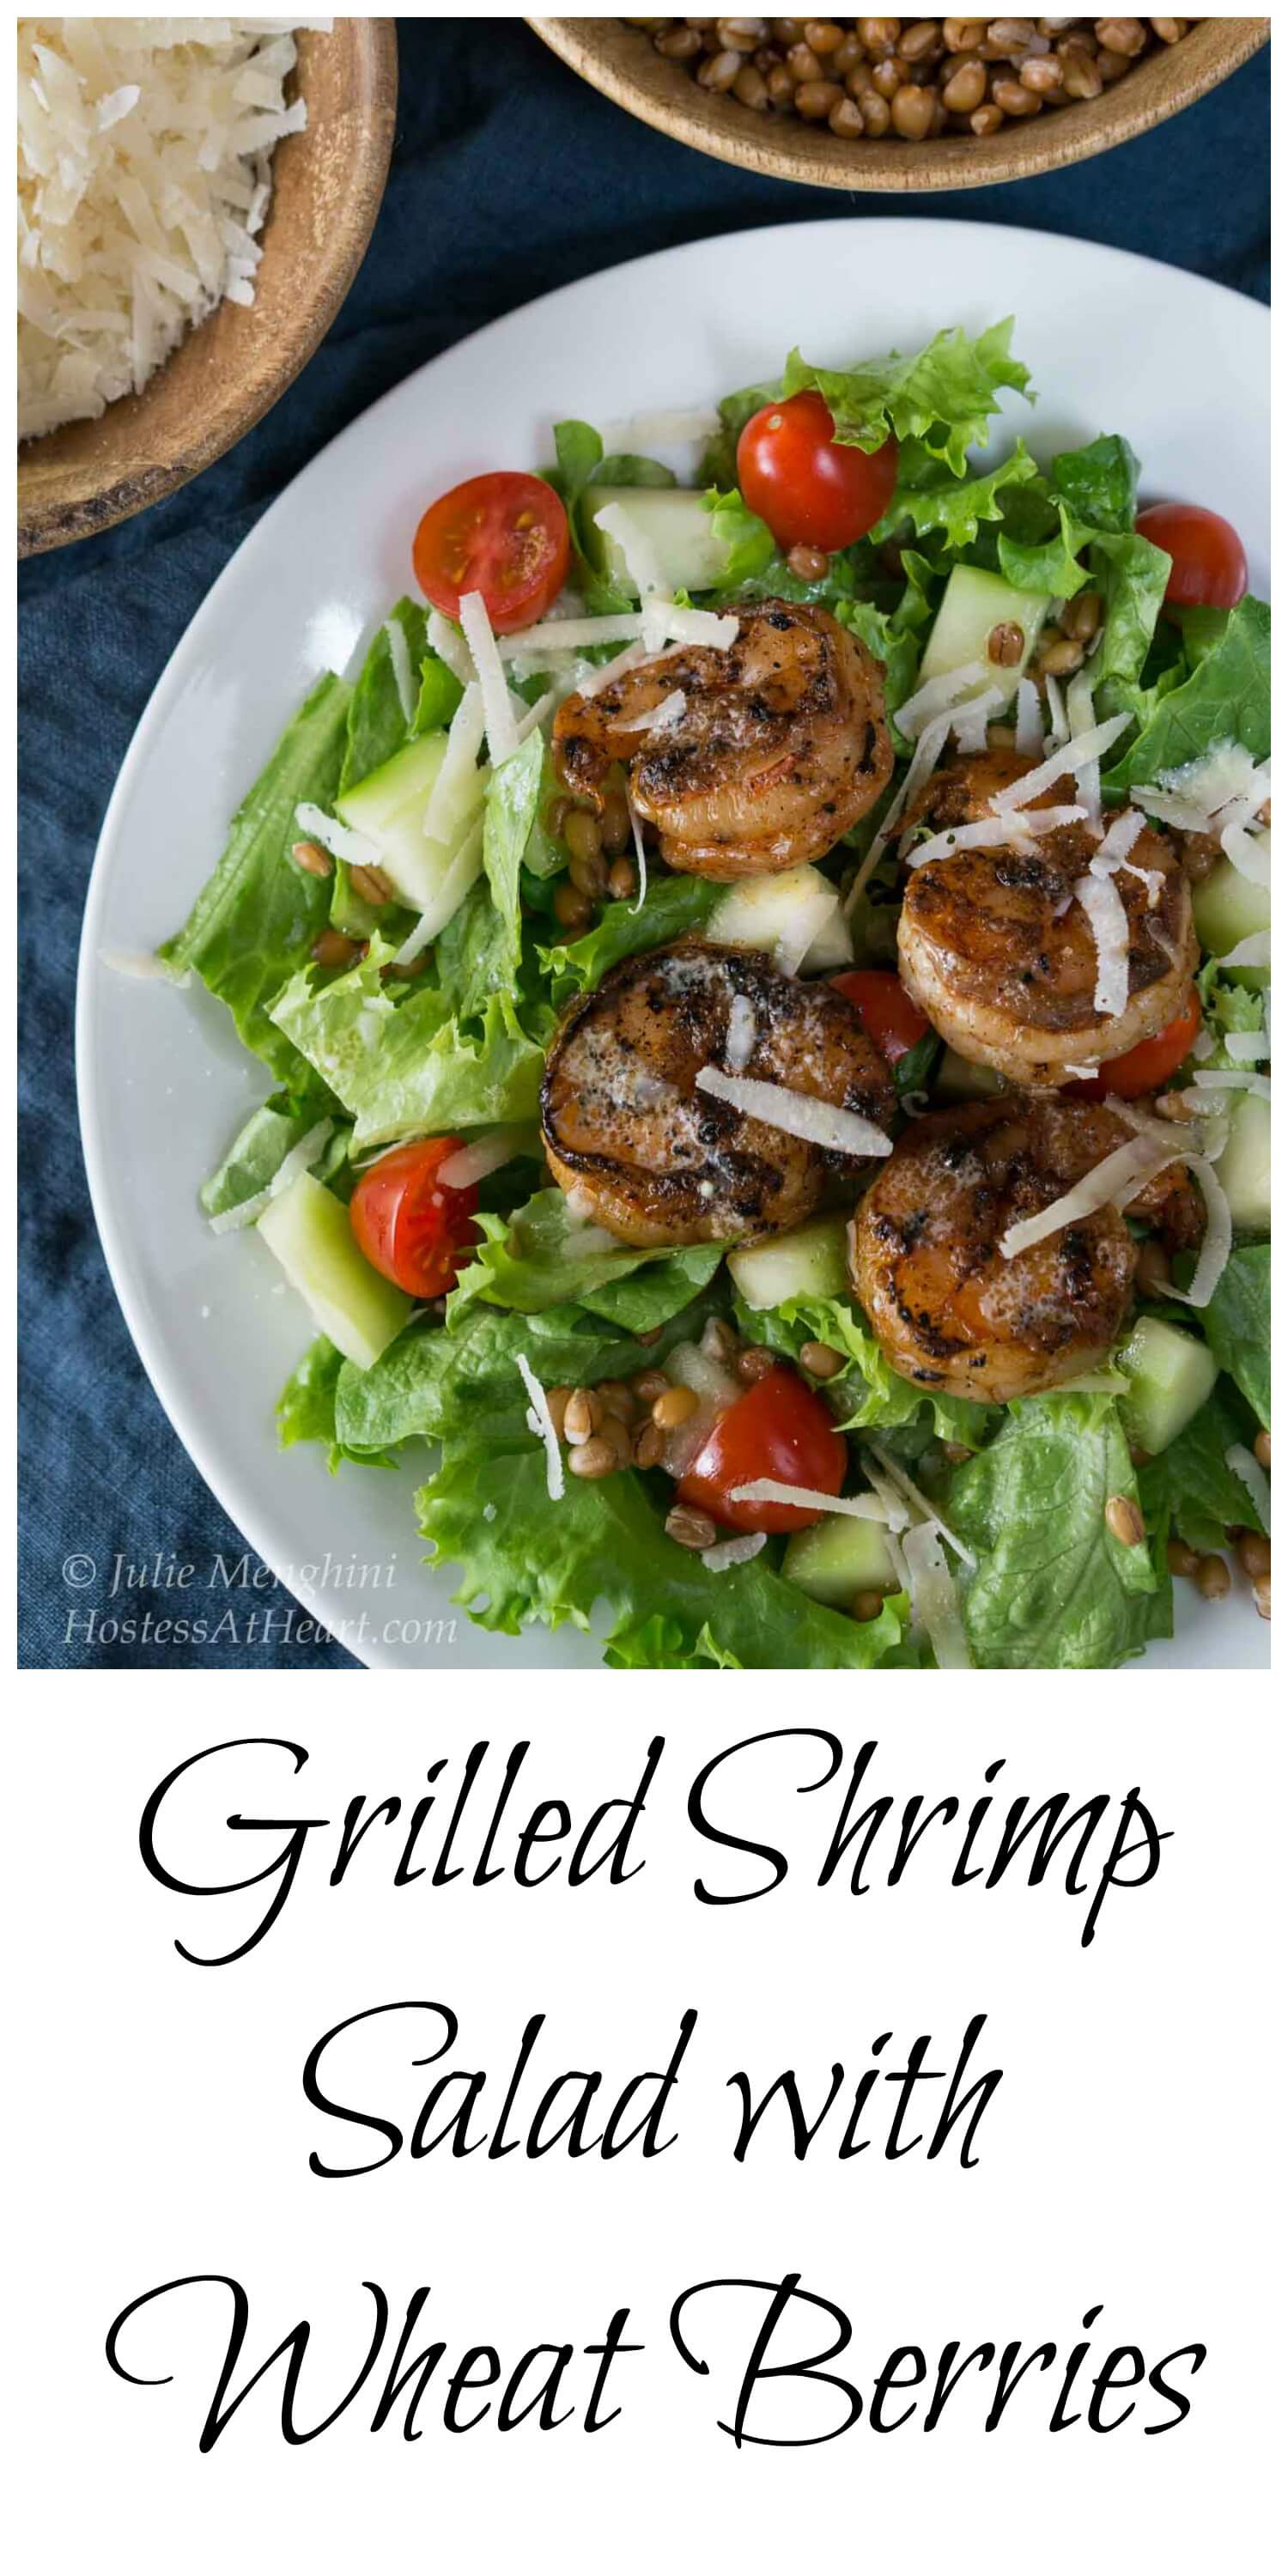 Grilled Shrimp Salad with Wheat Berries will not leave you hungry. It's filling, good for you and delicious. #healthyfood #whatsfordinner #Shrimp #shrimpsalad | Healthy Salad | Salad with shrimp | healthy salad